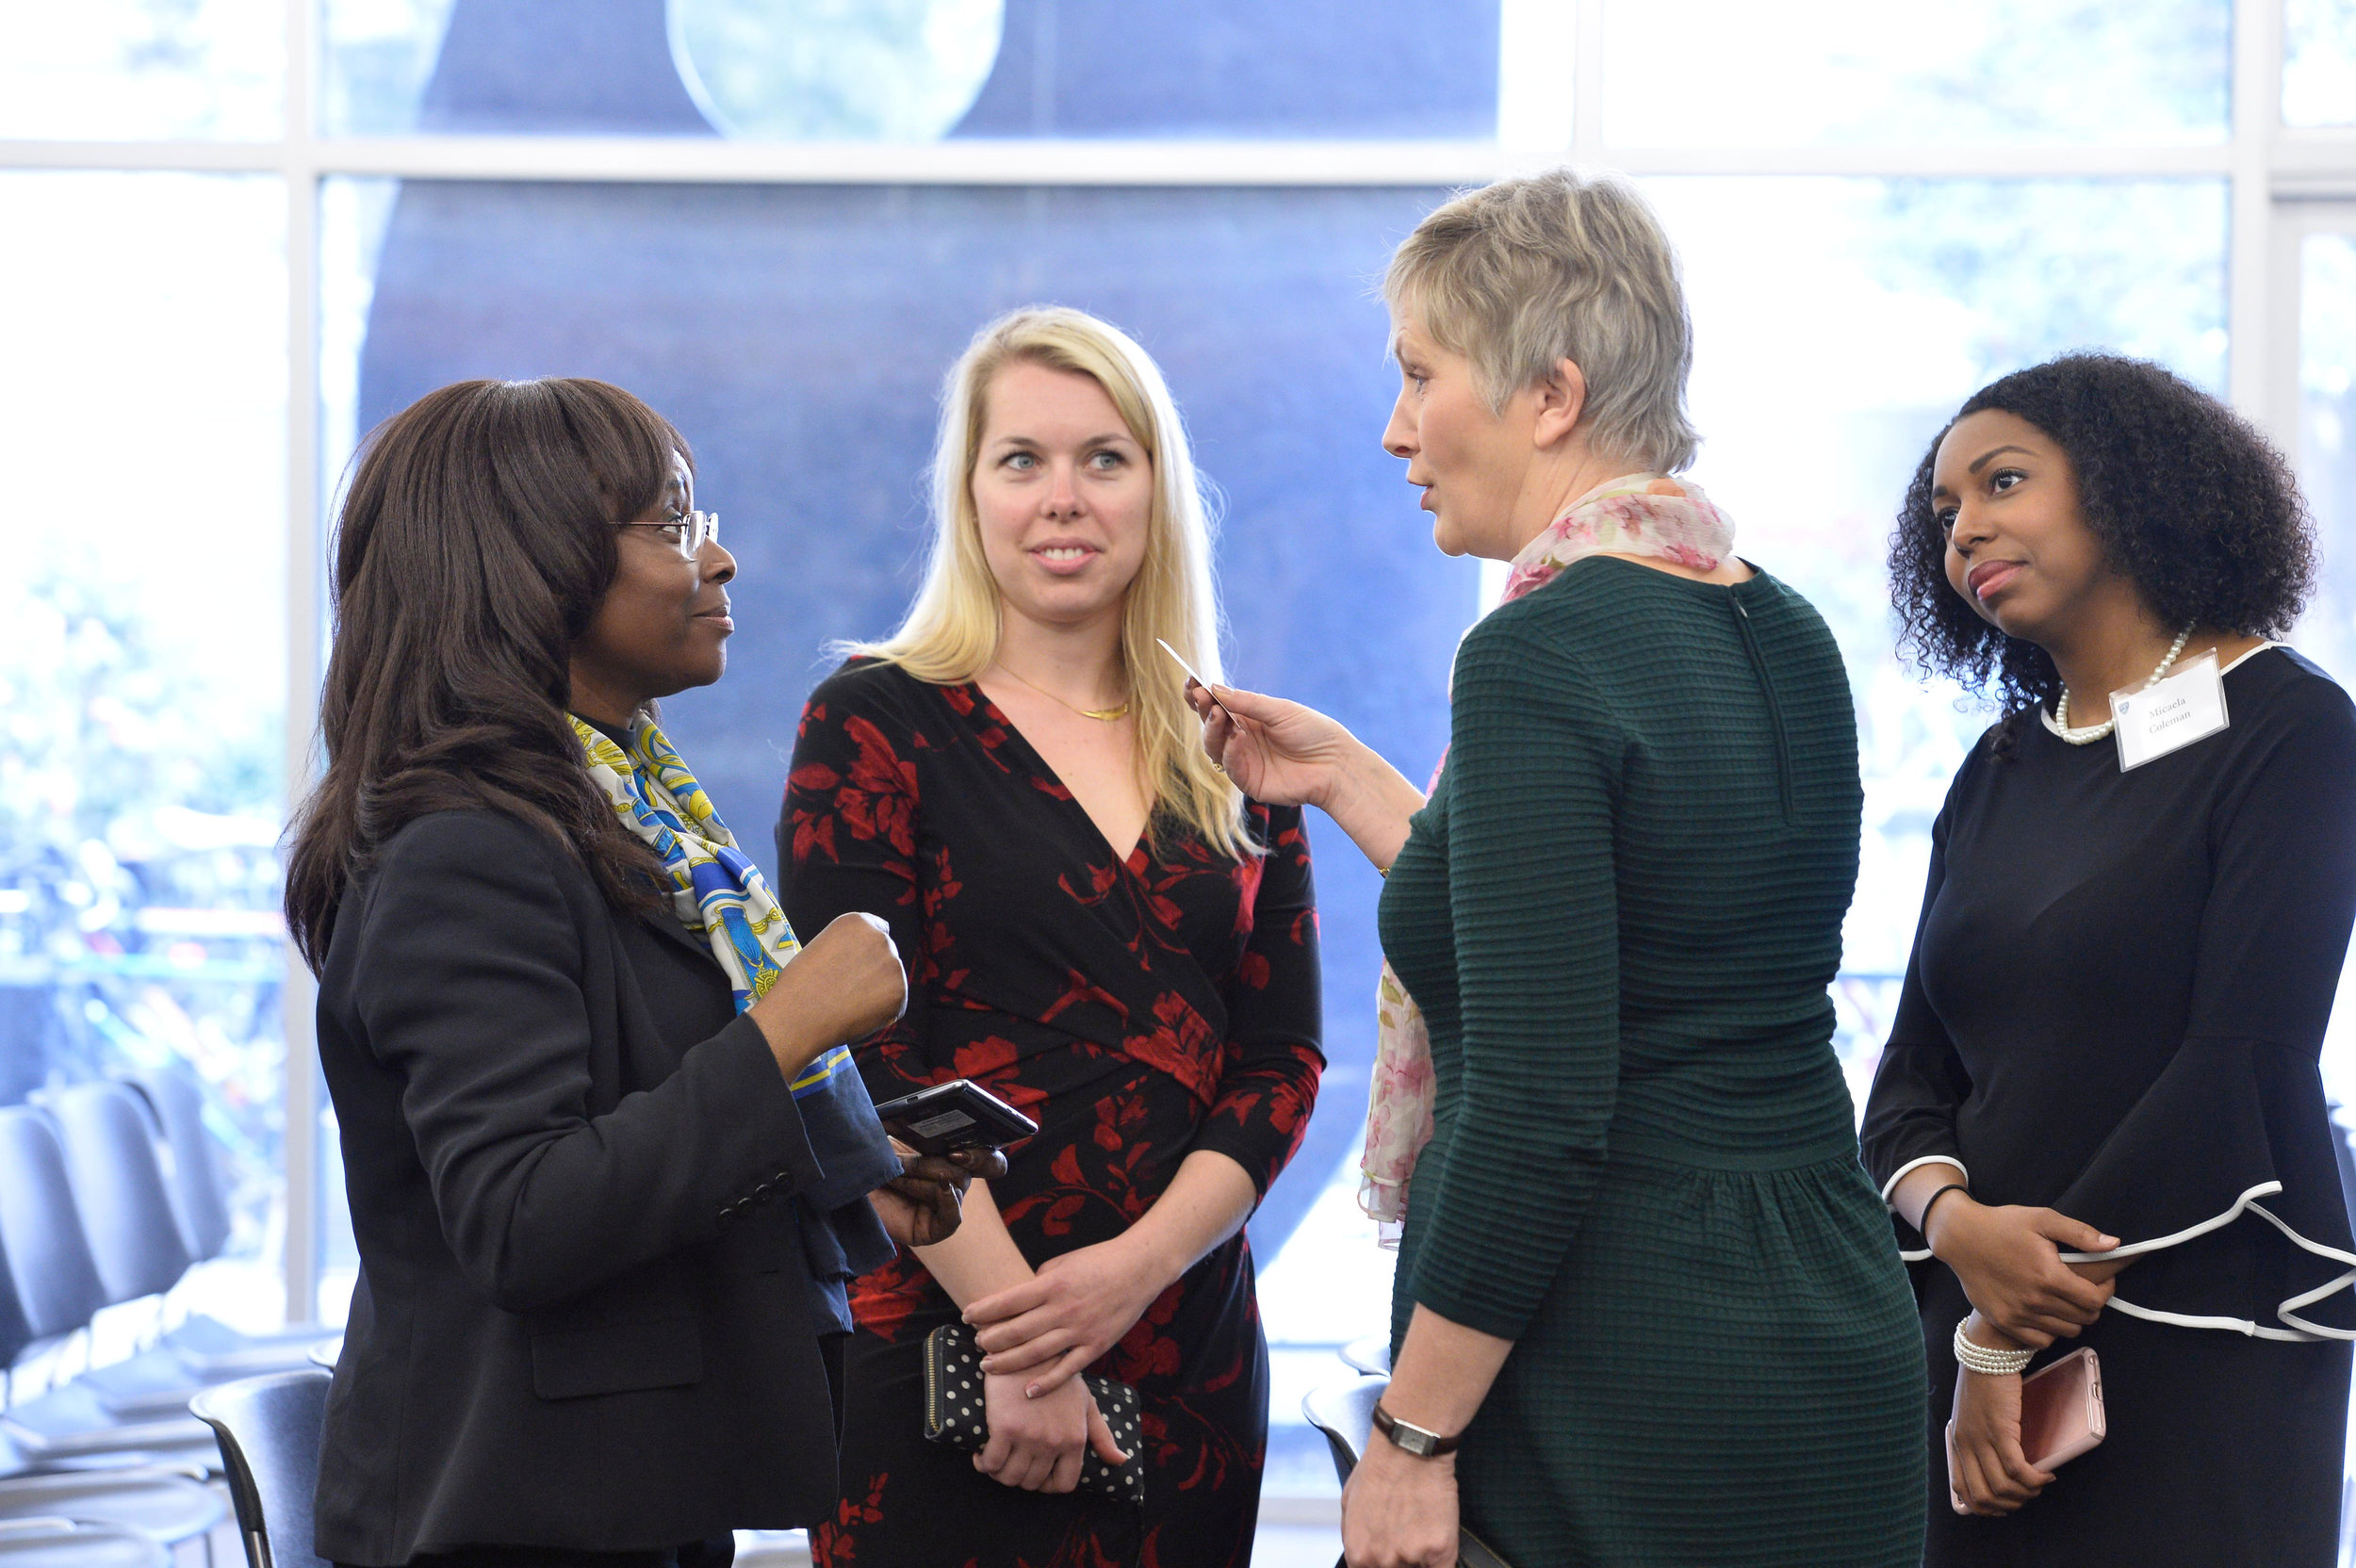 Attendees speak with Deputy Head of the EU Delegation to the United States Caroline Vicini after a panel on women in politics